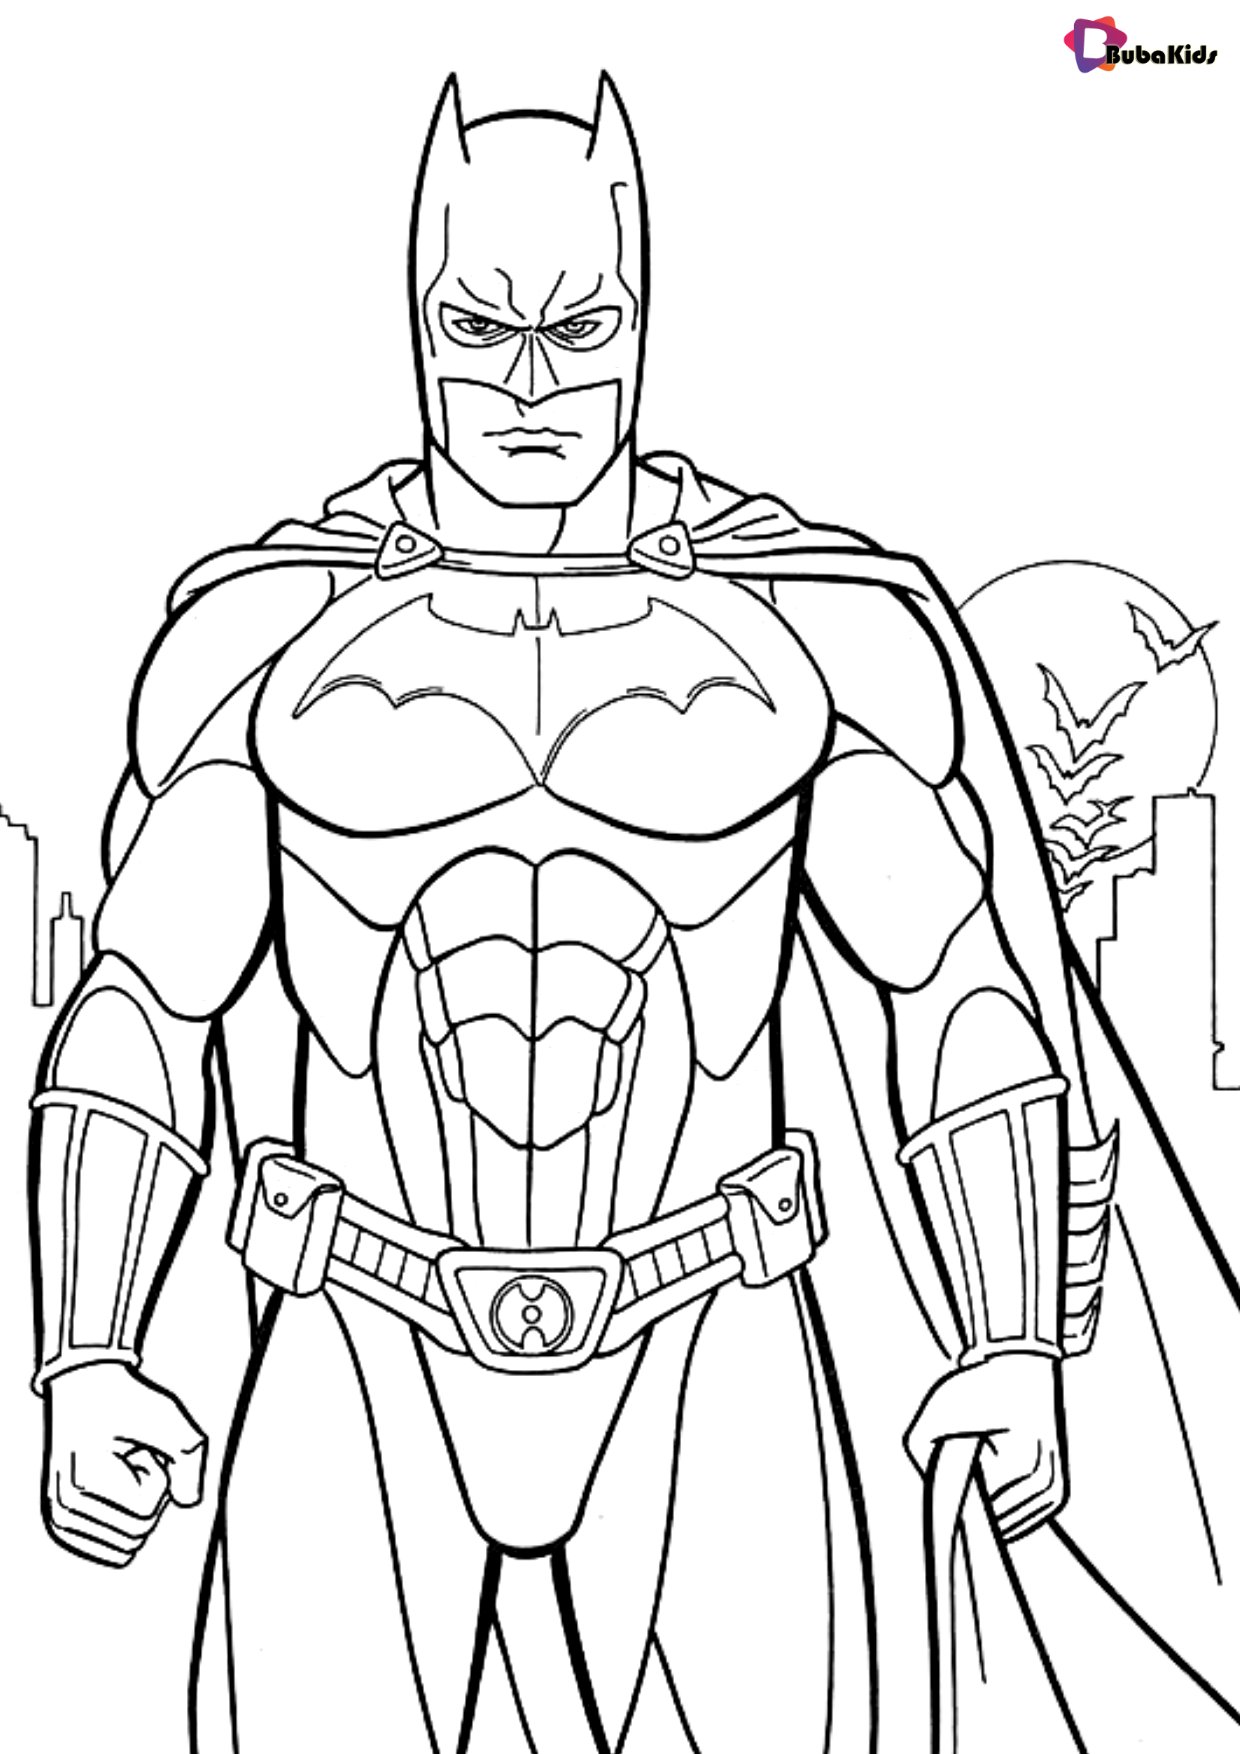 Superhero Coloring Pages Batman Coloring Page Collection Of Cartoon Coloring Pages For Teena Batman Coloring Pages Superhero Coloring Pages Superhero Coloring